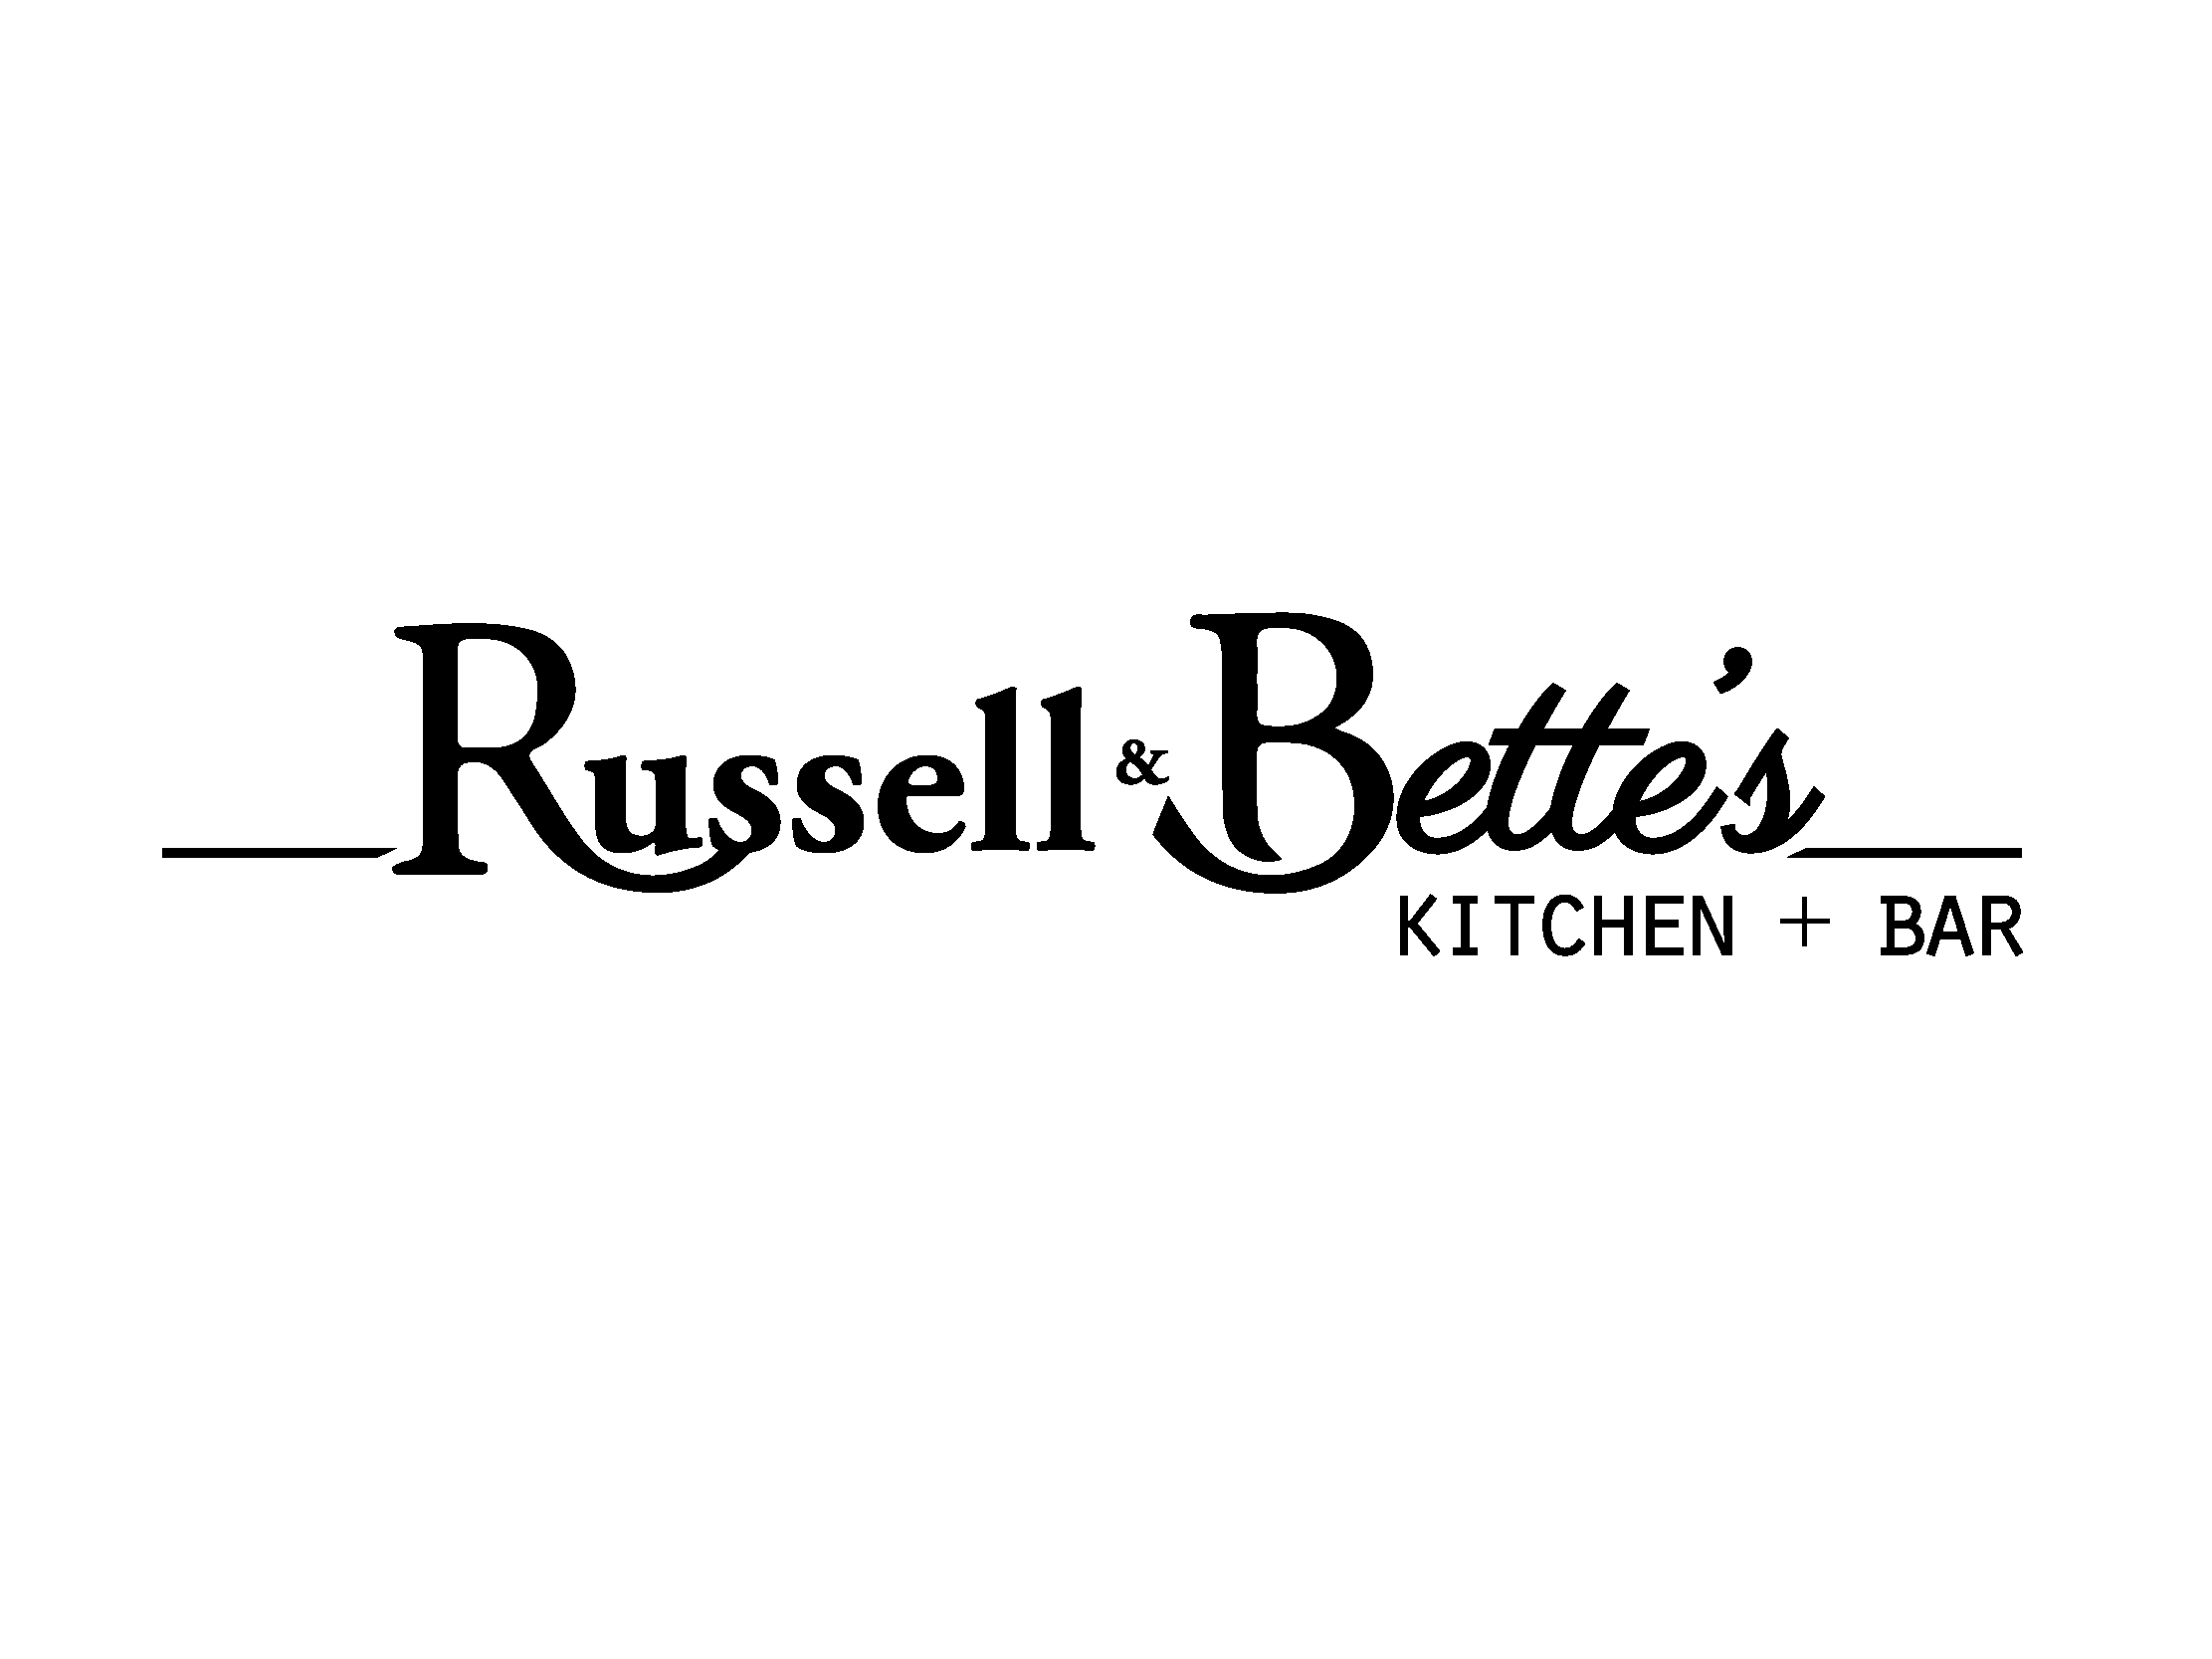 Russell & Bette's